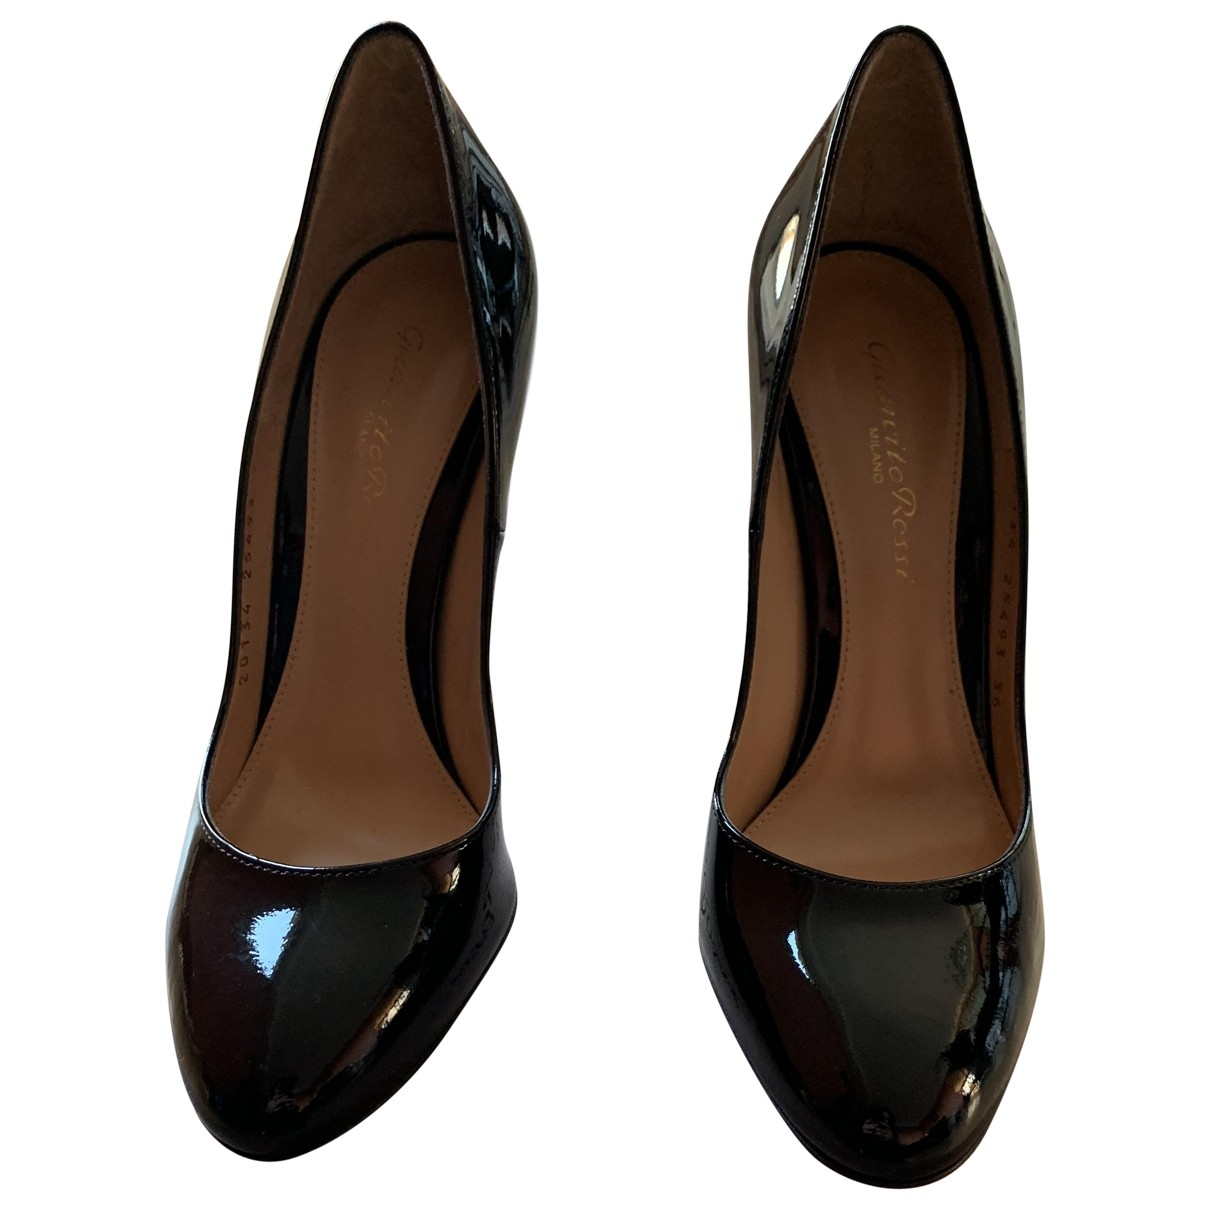 Gianvito Rossi \N Black Patent leather Heels for Women 36 EU